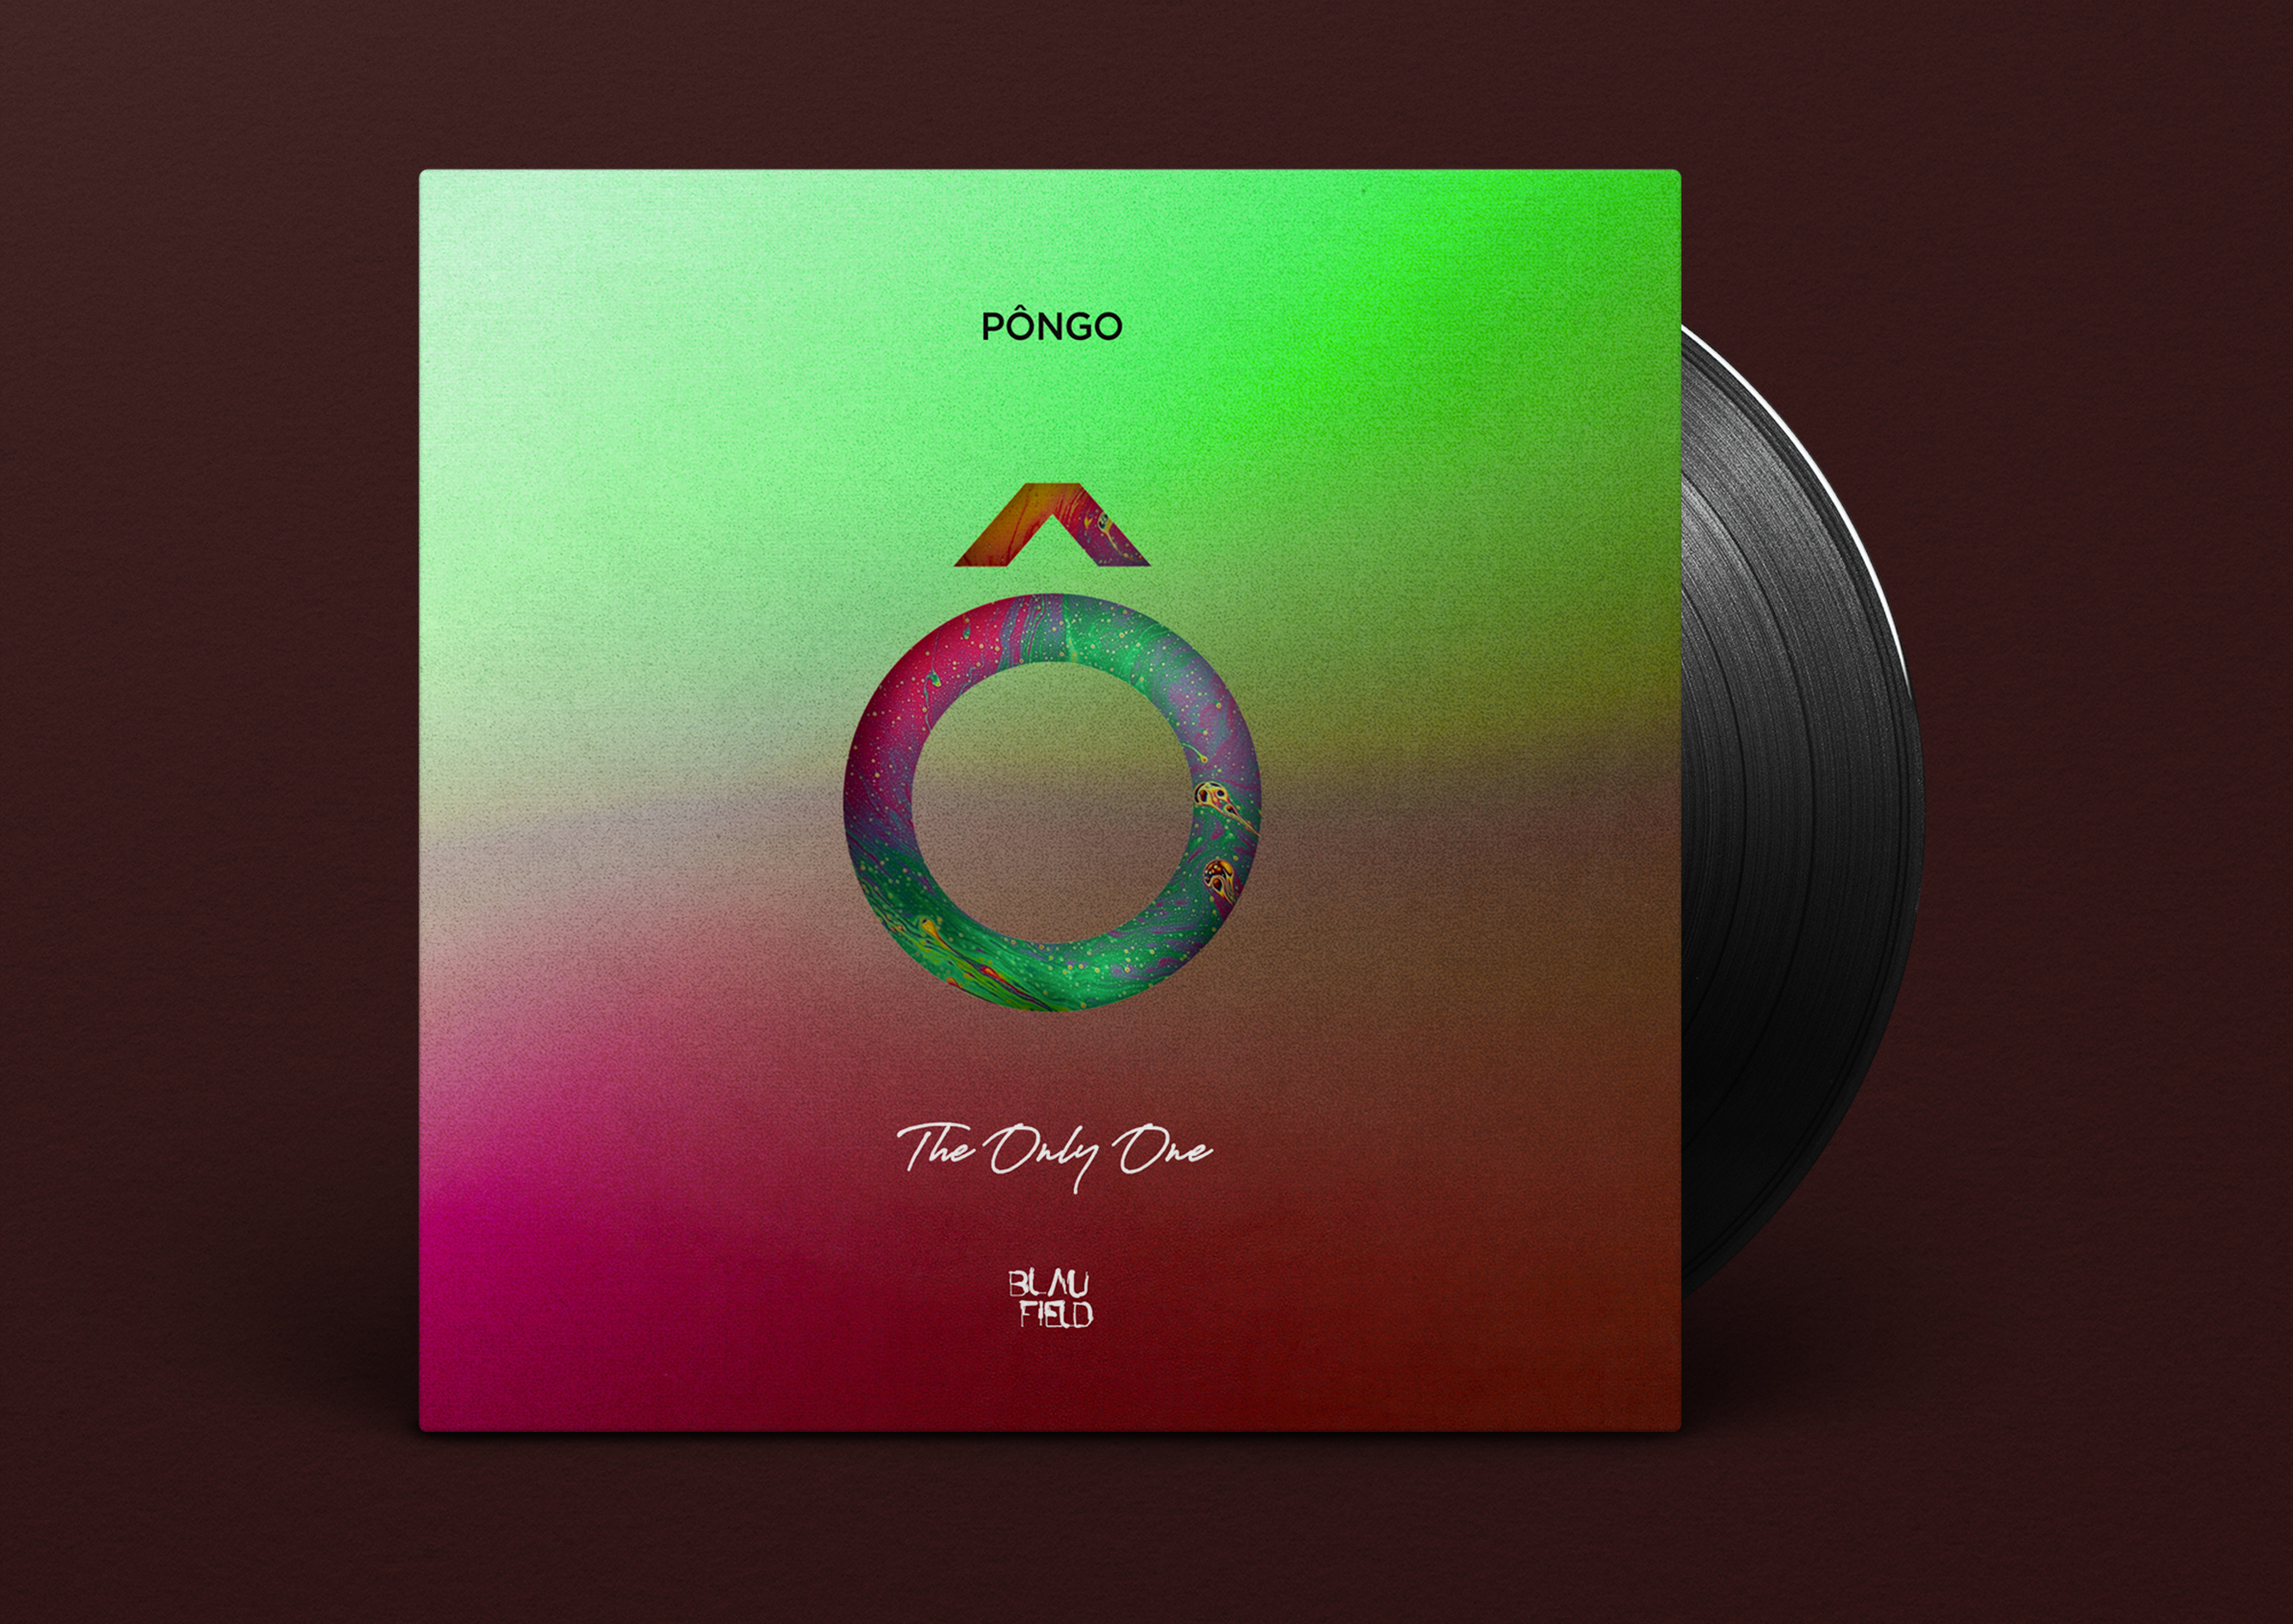 Pongo-The only one ep